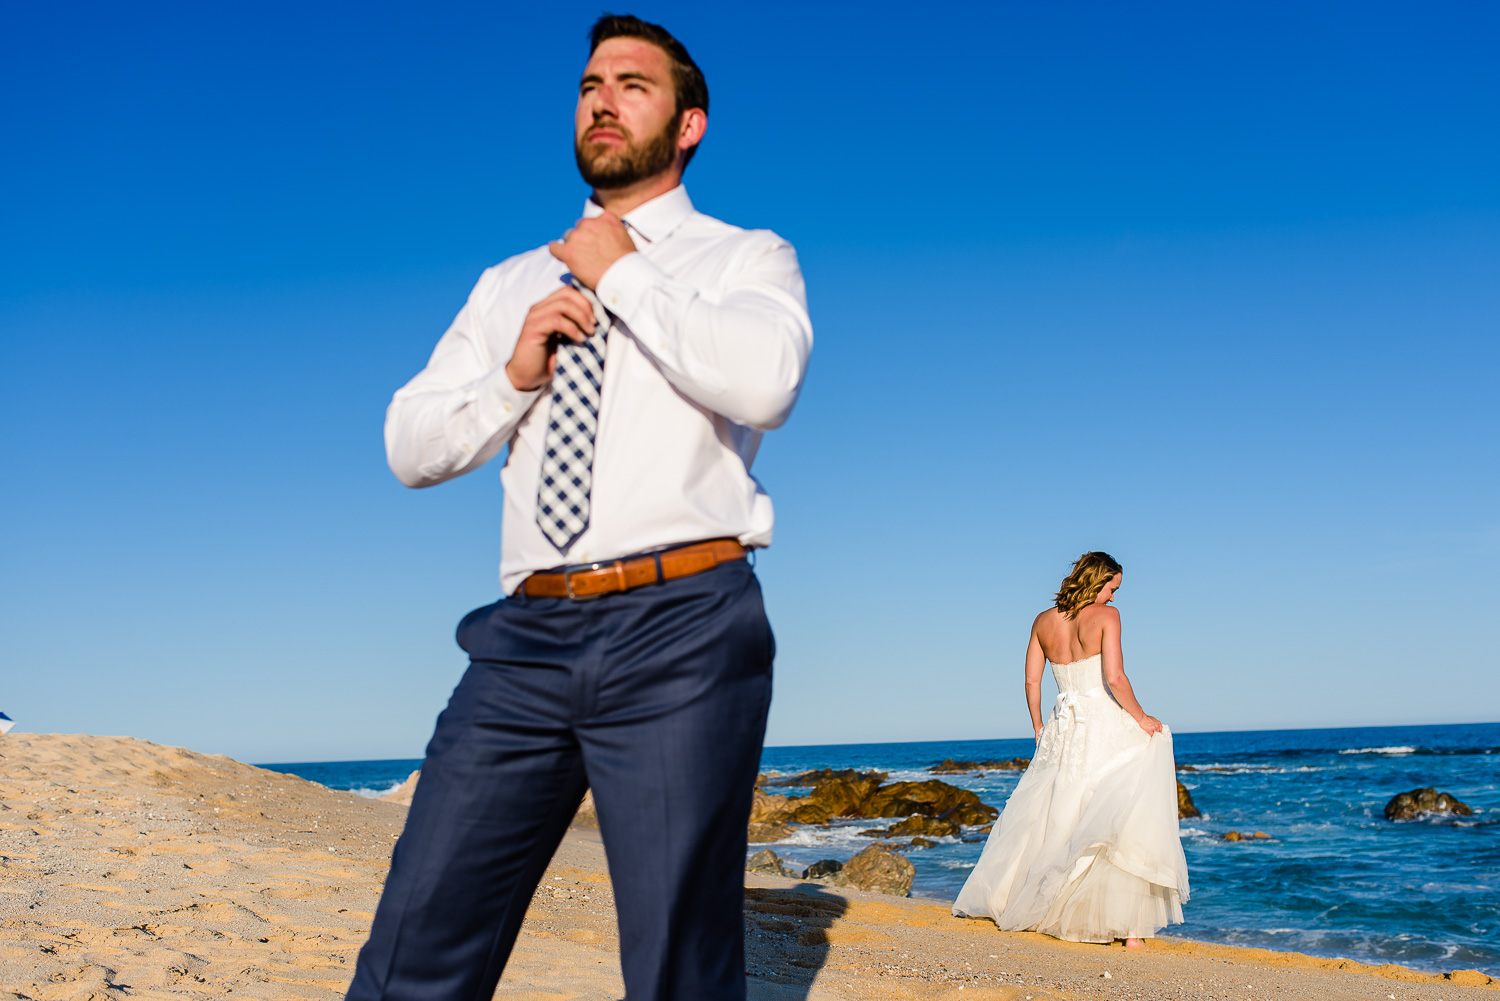 Cbo-Beach-Wedding.JPG